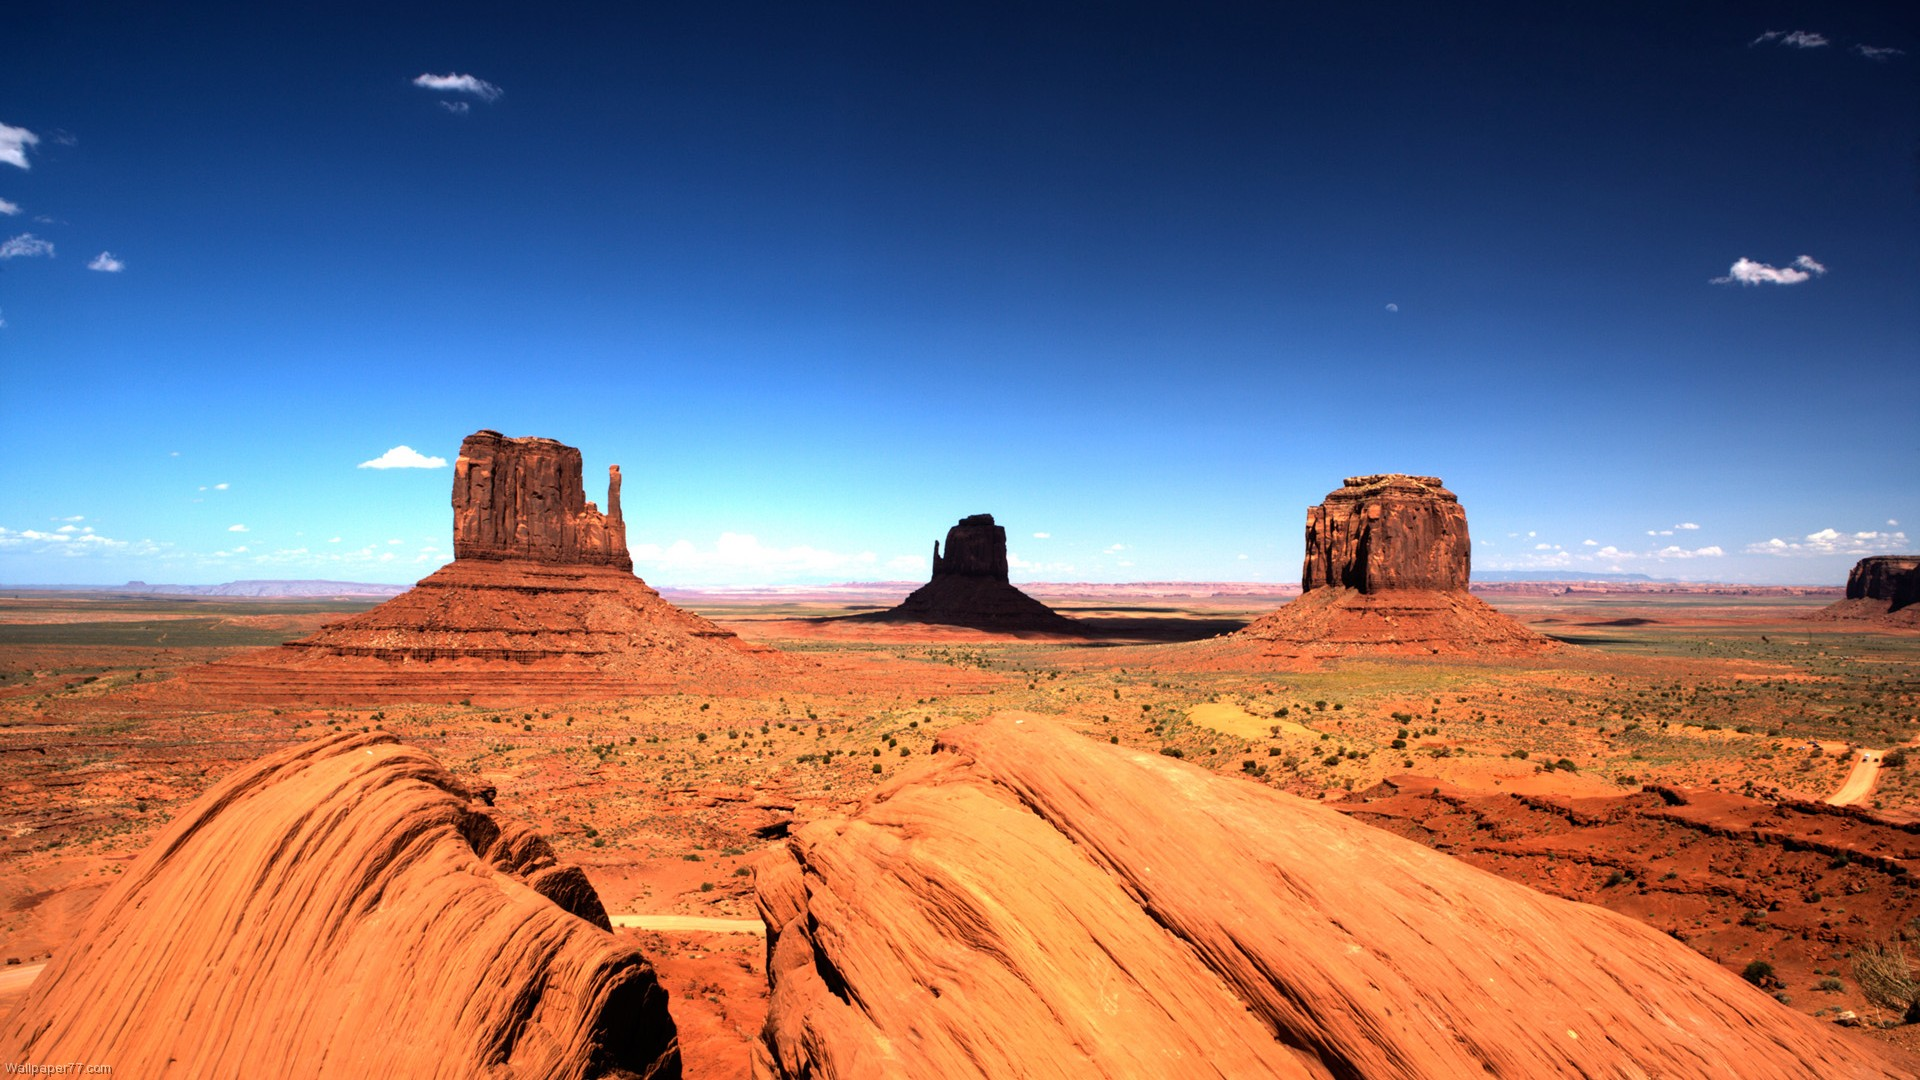 desert landscape new hd wallpapers background nature images